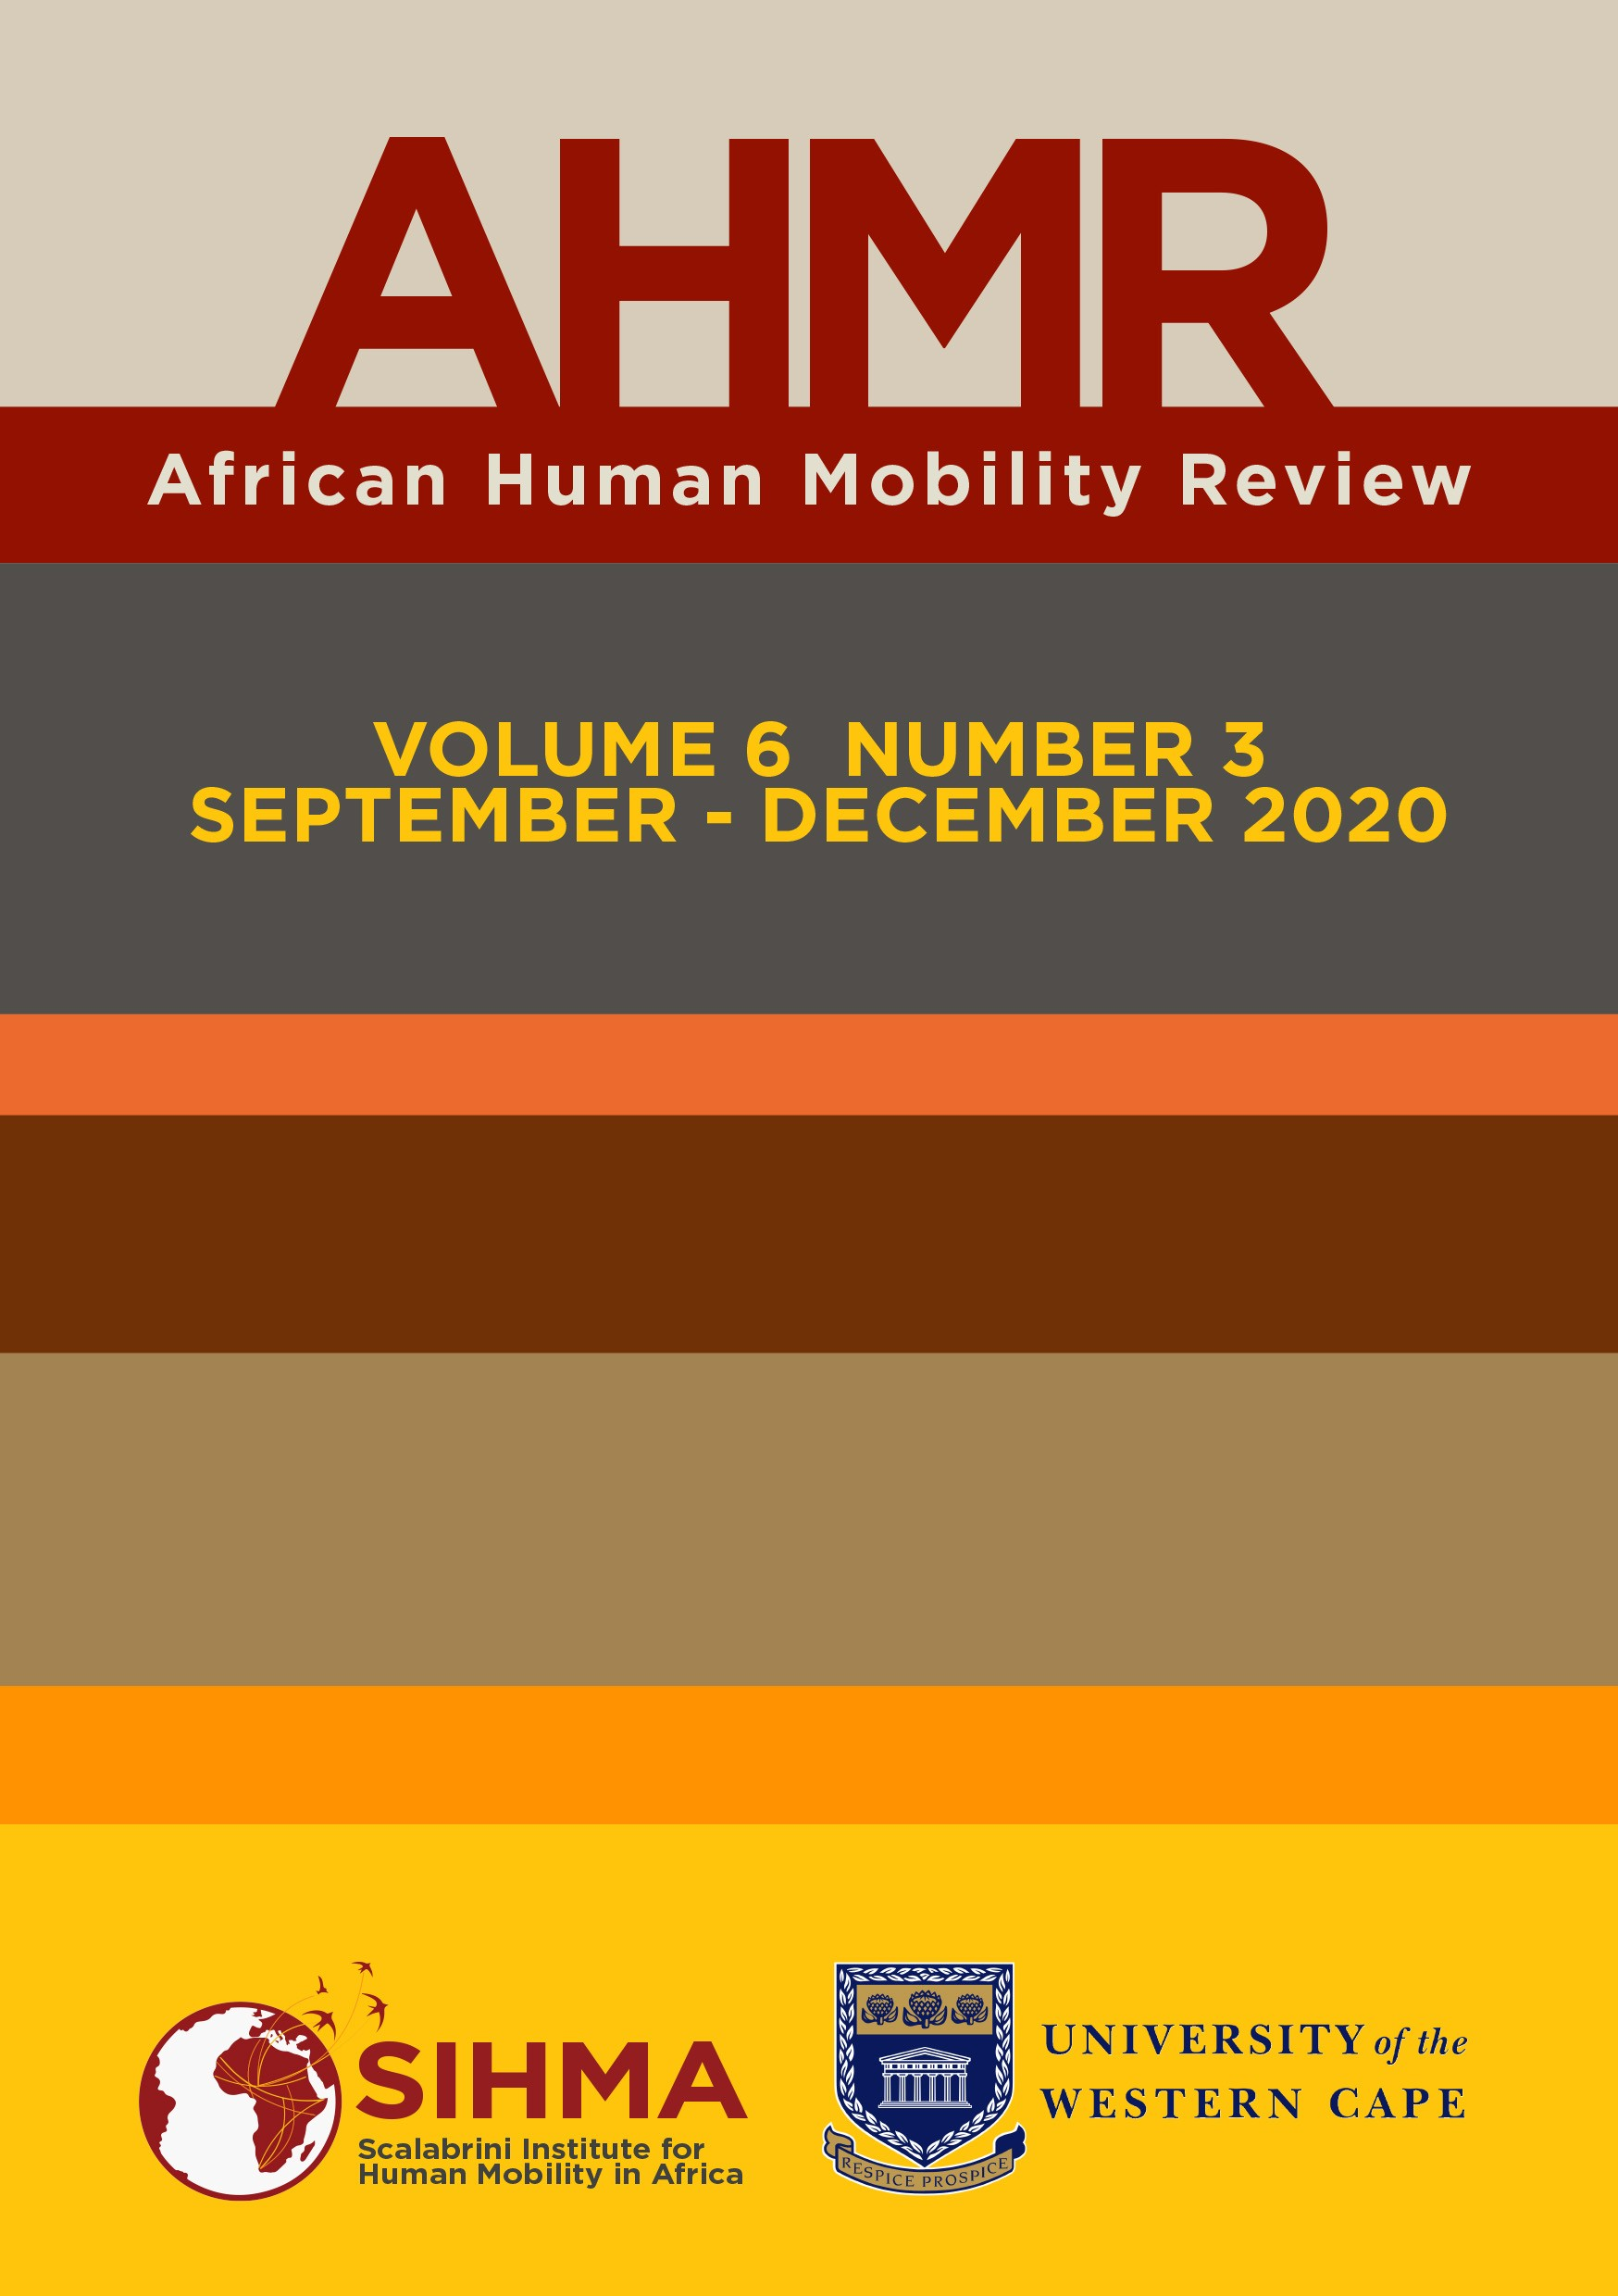 https://sihma.org.za/photos/shares/AHMR volume 6 number 3 COVER PRINT-3.jpg